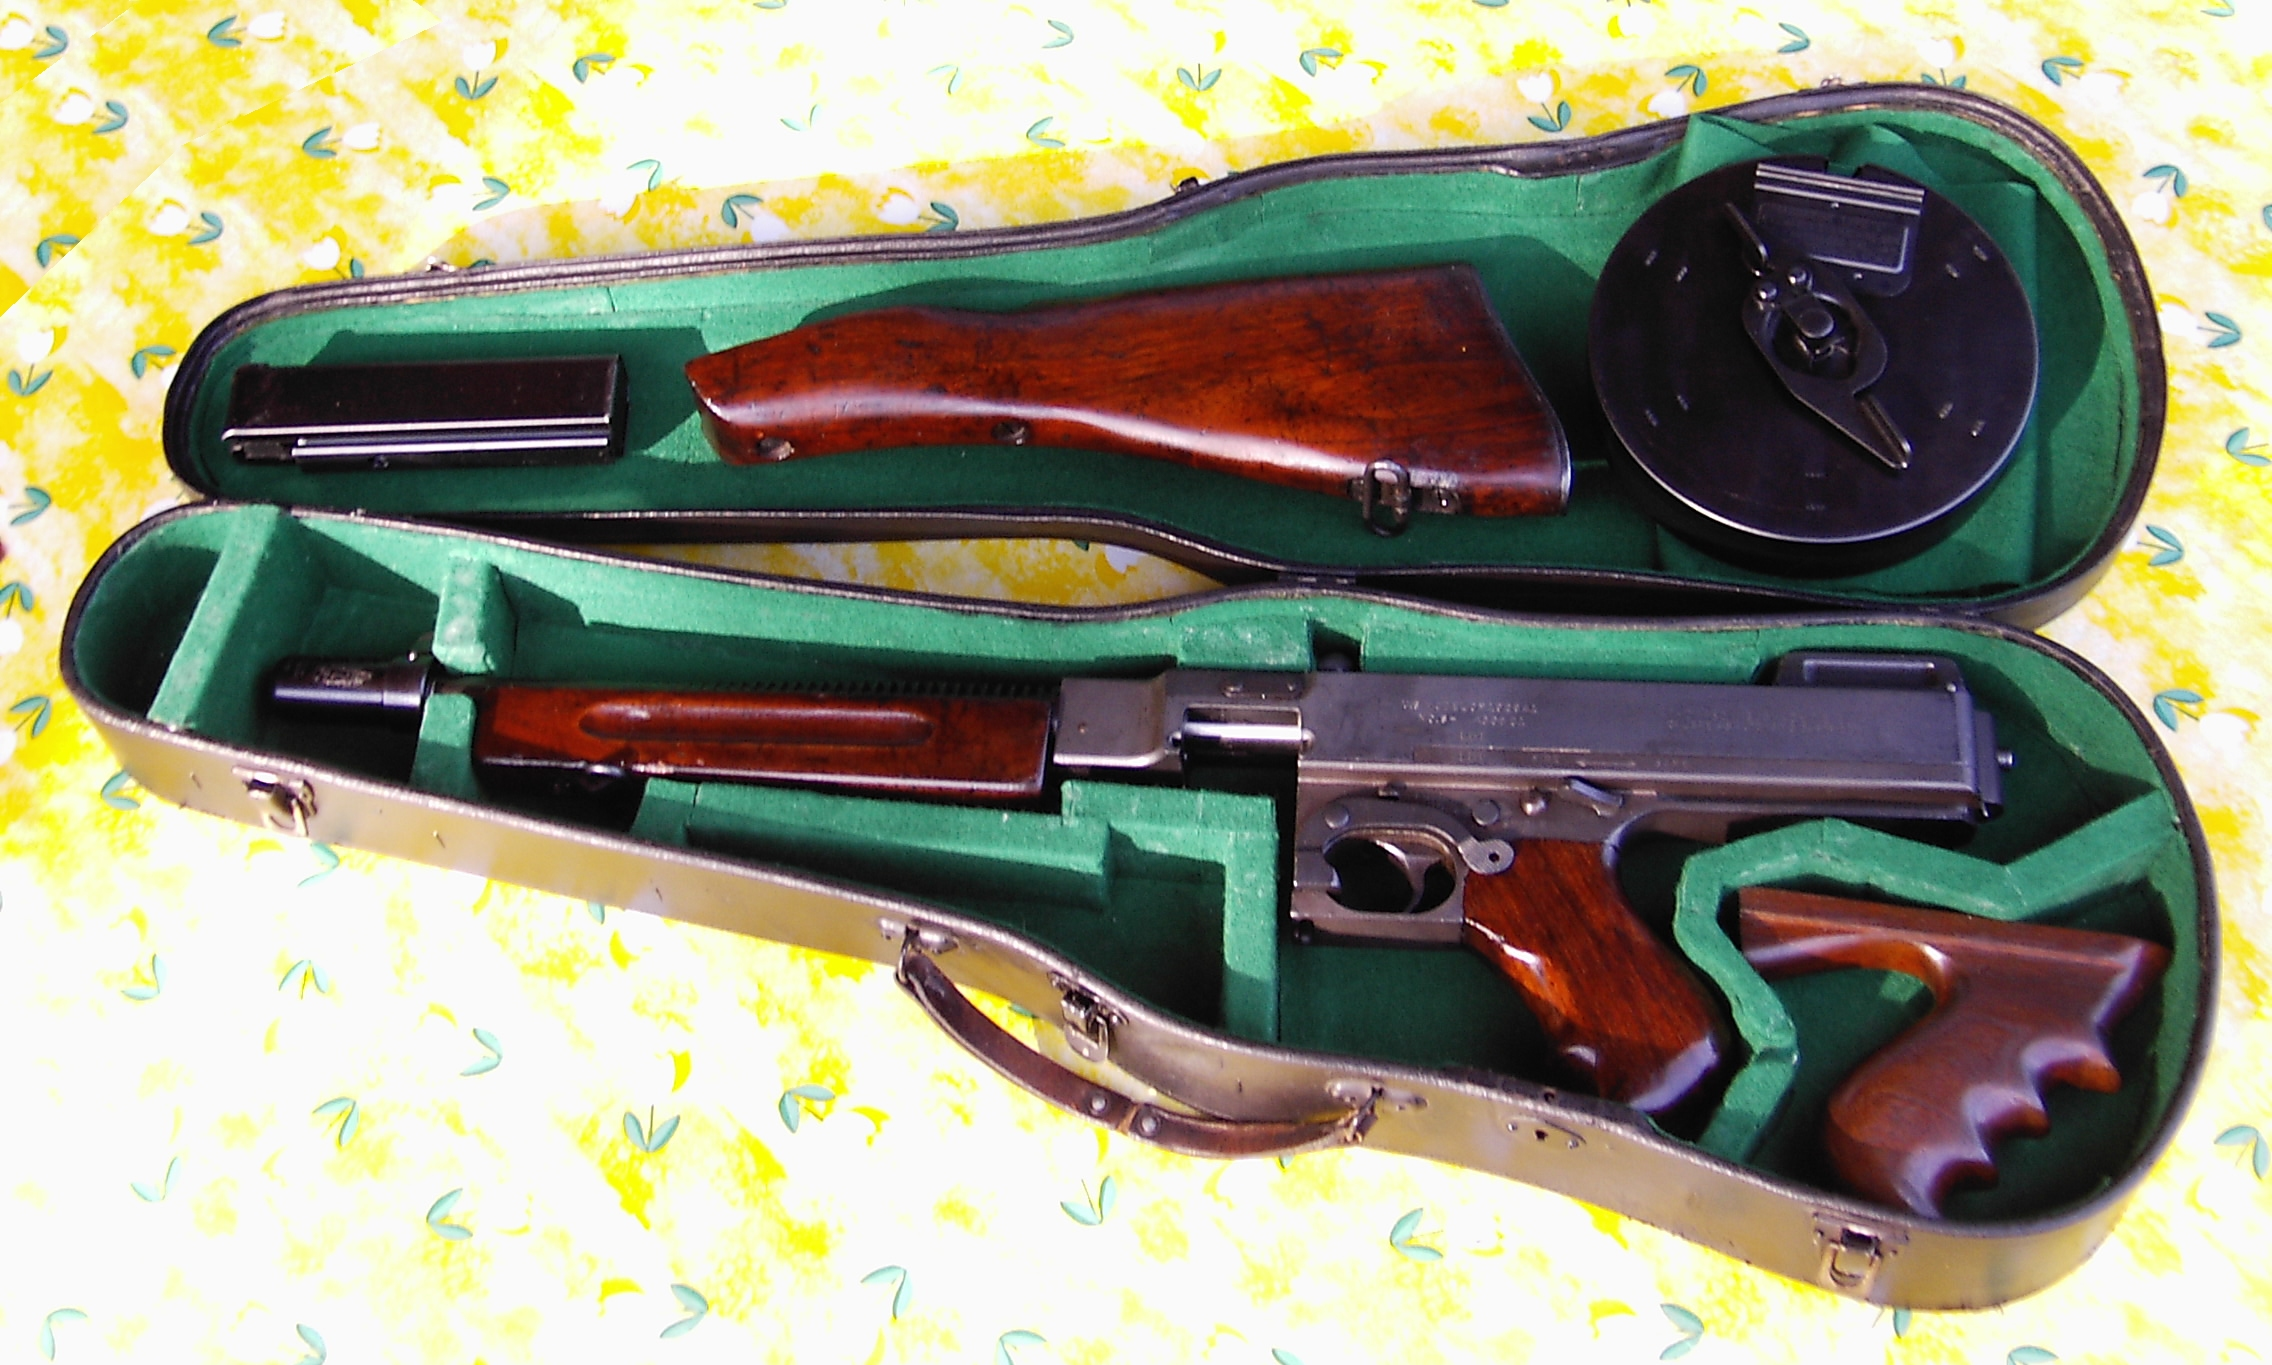 Thompson_in_violin_case.jpg